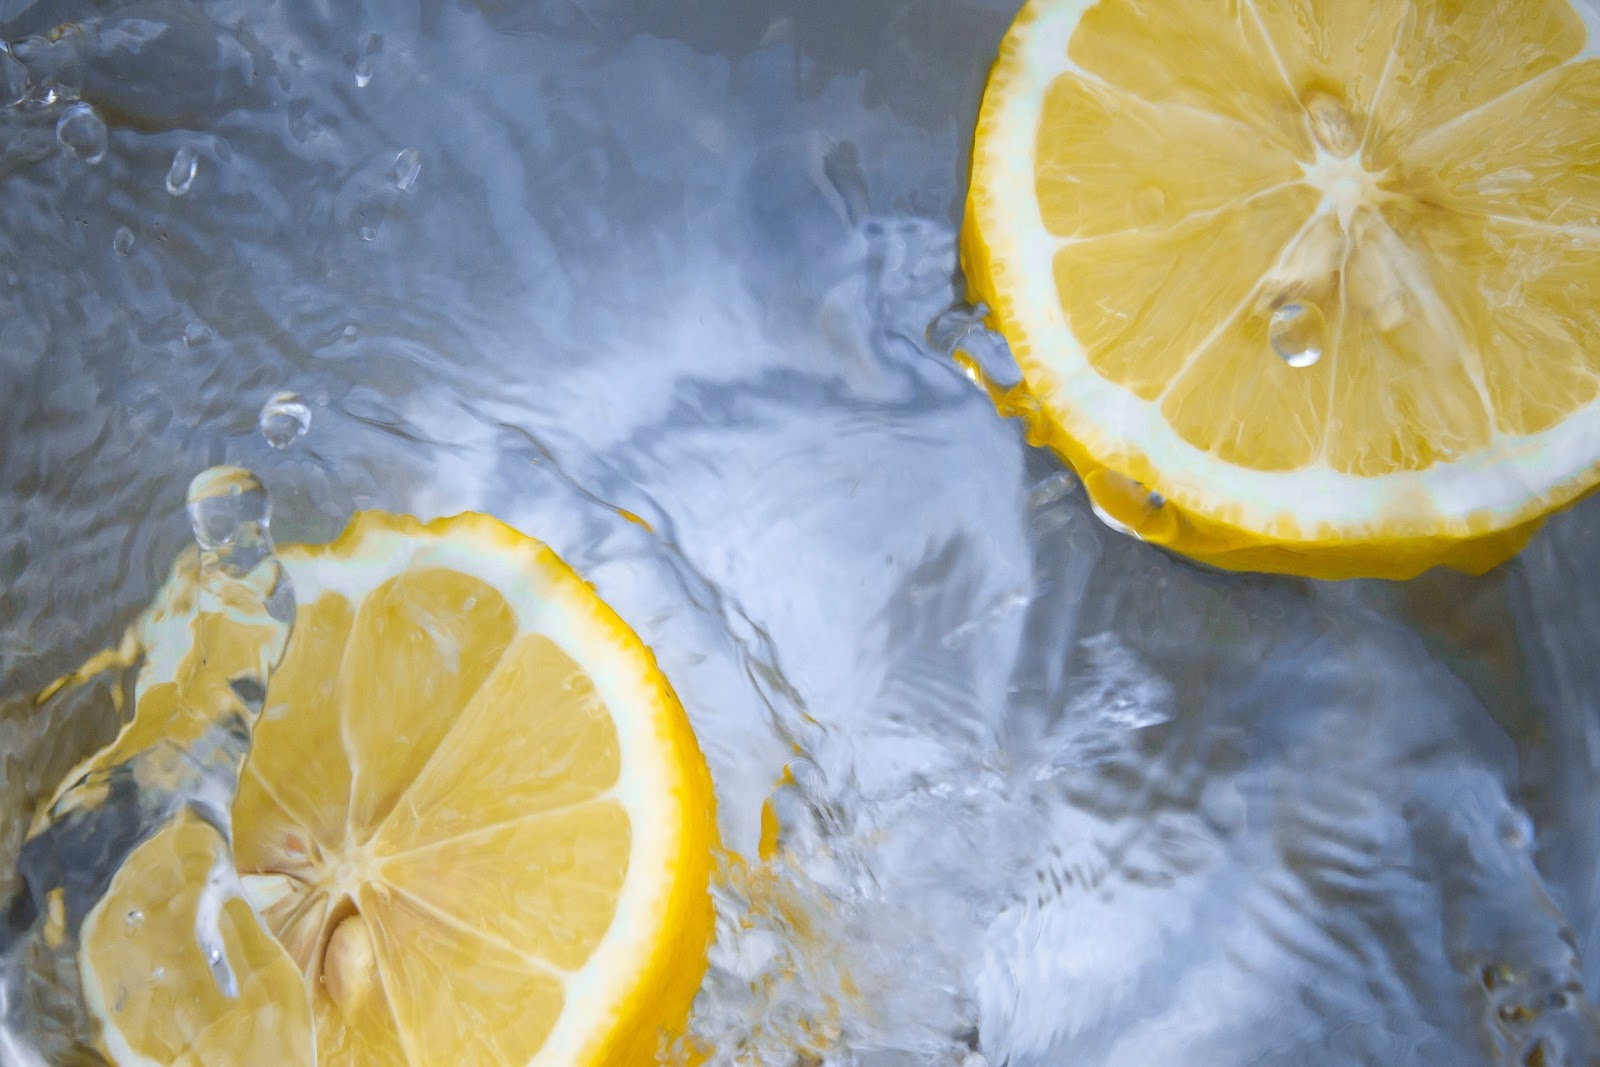 Lemons are a good source of Vitamin C.